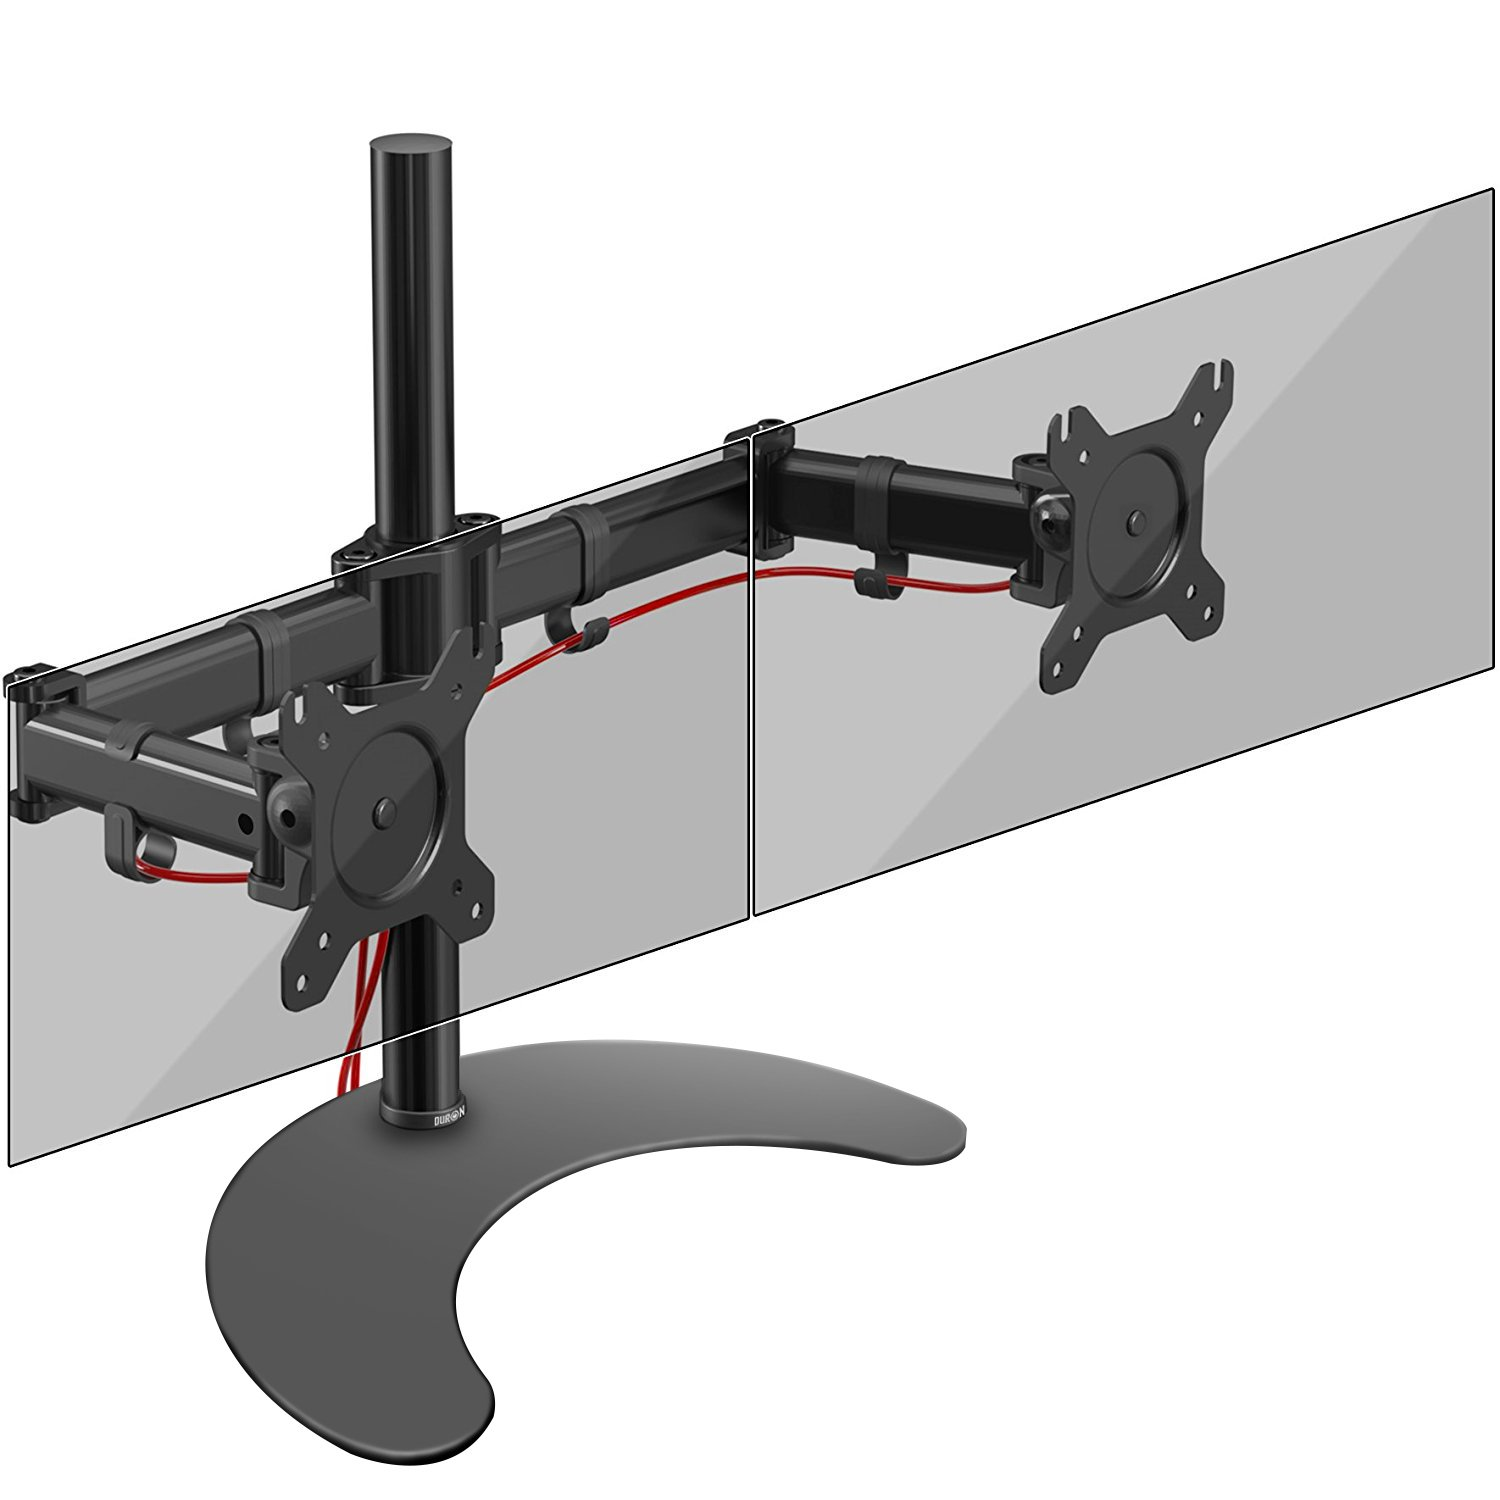 Duronic Steel DM25D1 Single LCD LED Freestanding Desk Mount Monitor Arm Stand Bracket with Tilt and Swivel + 10 Year Warranty - (Adjustable Monitor Arm: Tilt ±90/35°|Swivel 60°|Rotate 360°) DM25D2